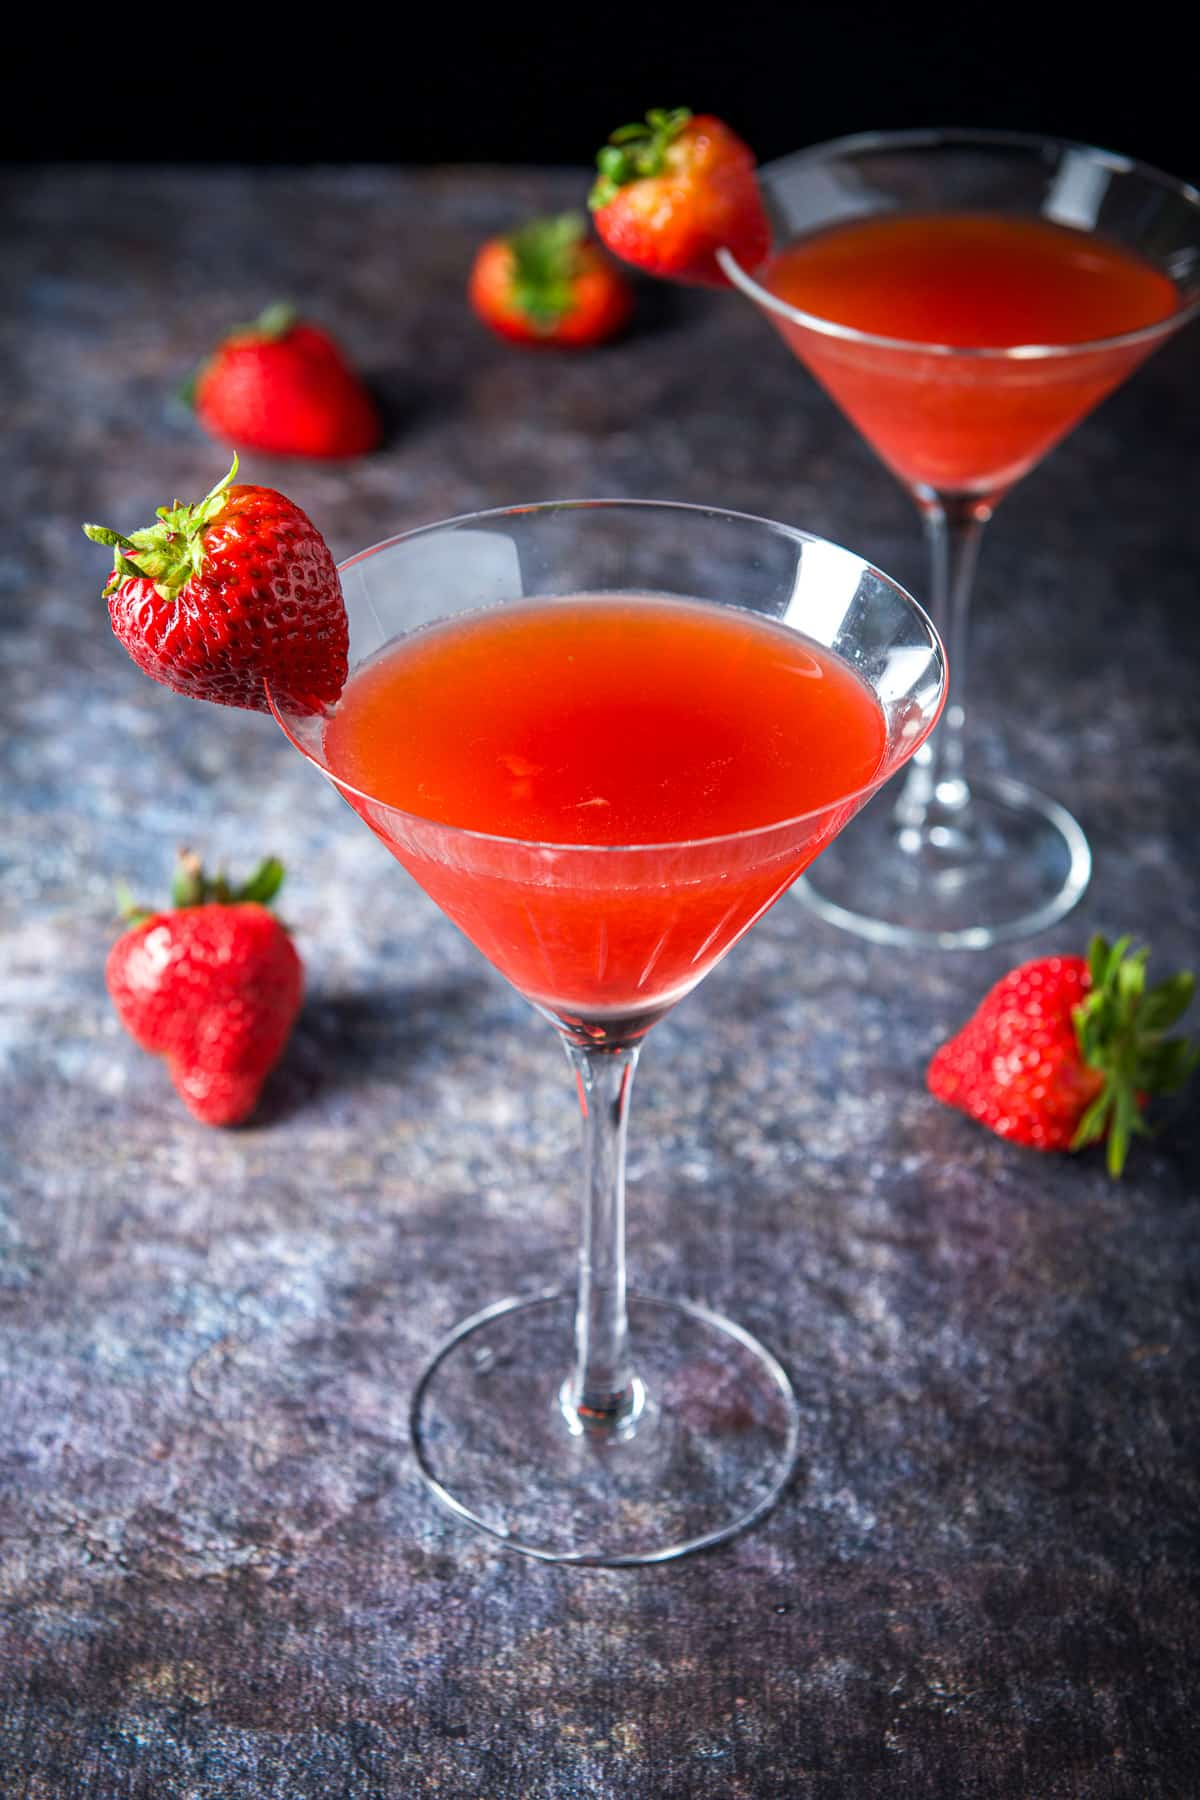 Two martini glasses filled with the strawberry cocktail with the fruit on the rims and table